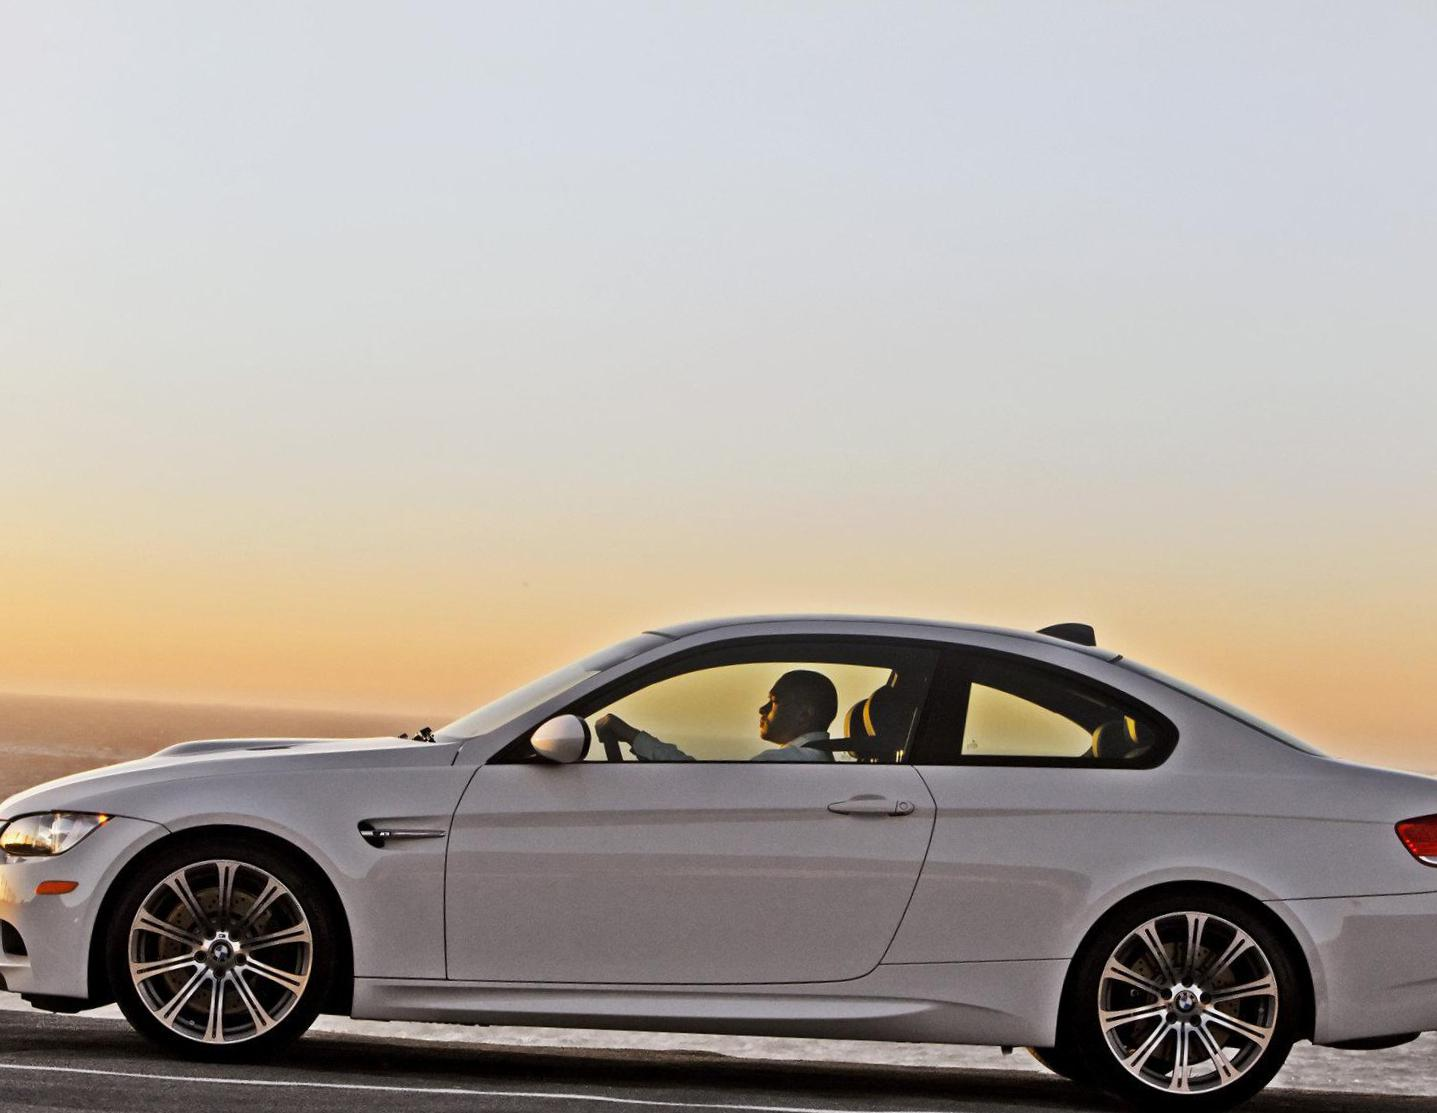 Bmw M3 Coupe E92 Photos And Specs Photo M3 Coupe E92 Bmw Tuning And 23 Perfect Photos Of Bmw M3 Coupe E92